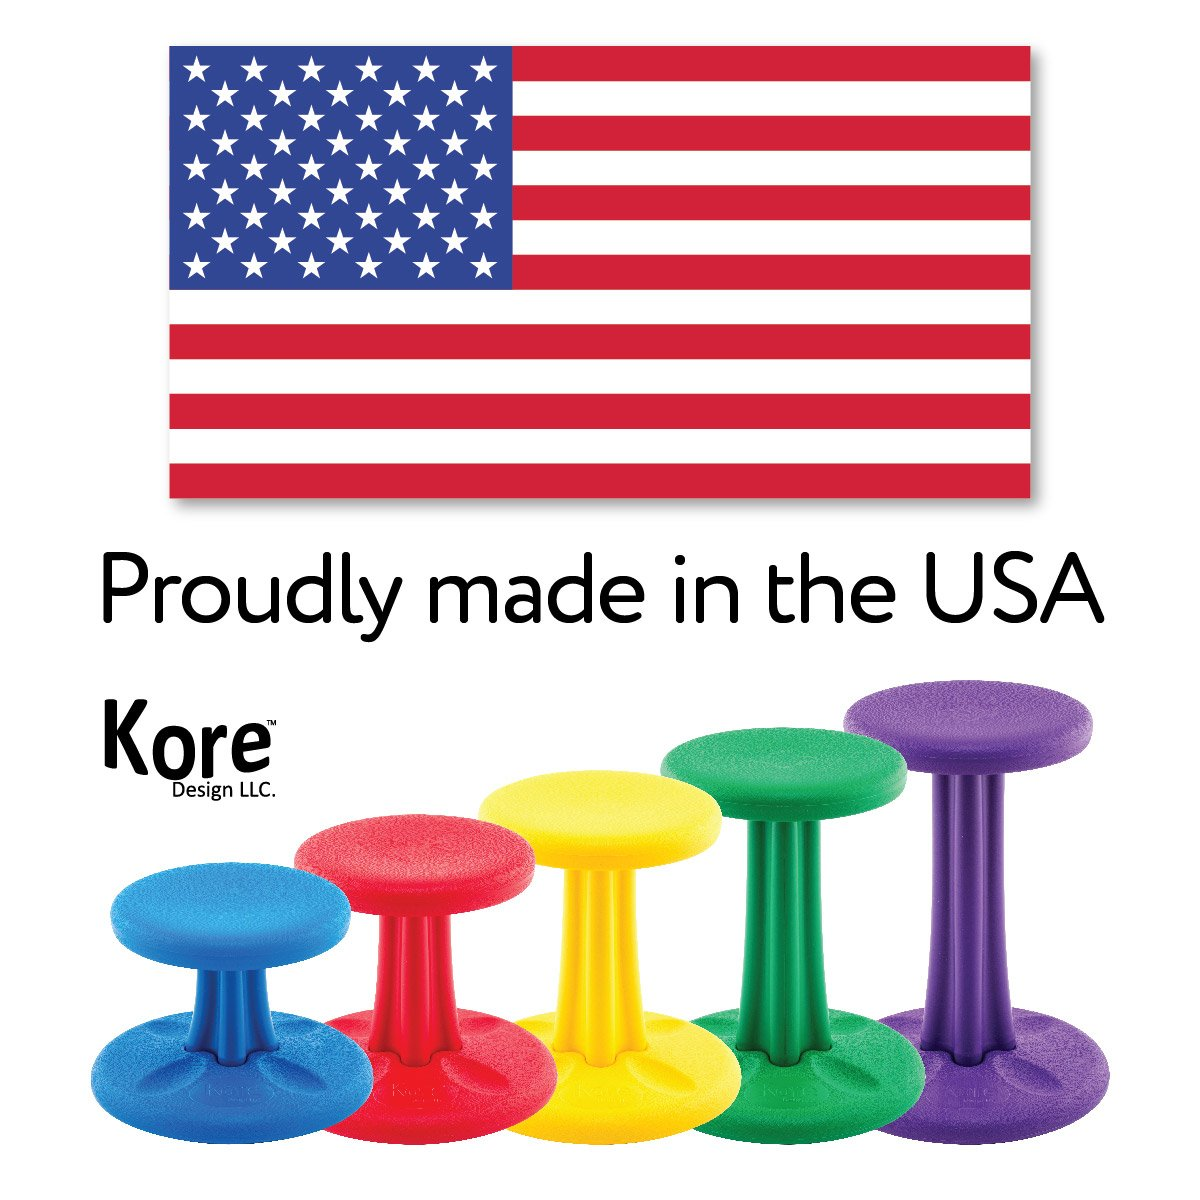 Kore Design KOR125 Pre-School Wobble Chair Height 12 Dark Blue